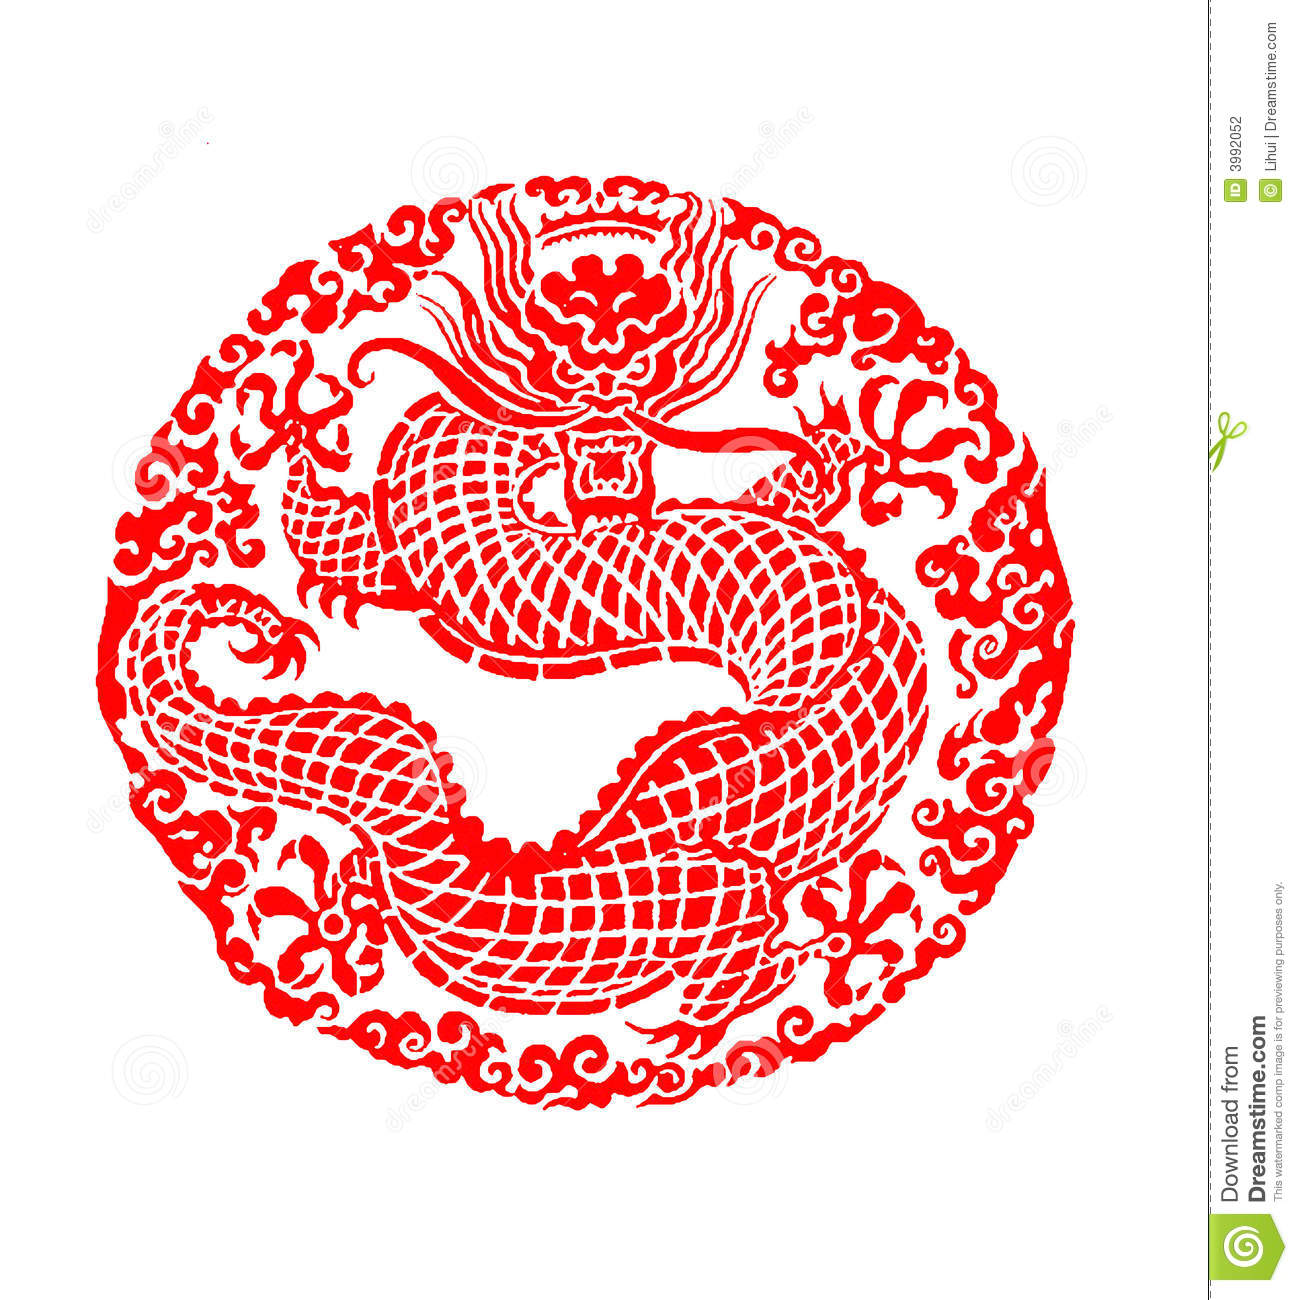 Http Www Dreamstime Com Stock Photography Chinese Dragon Image3992052